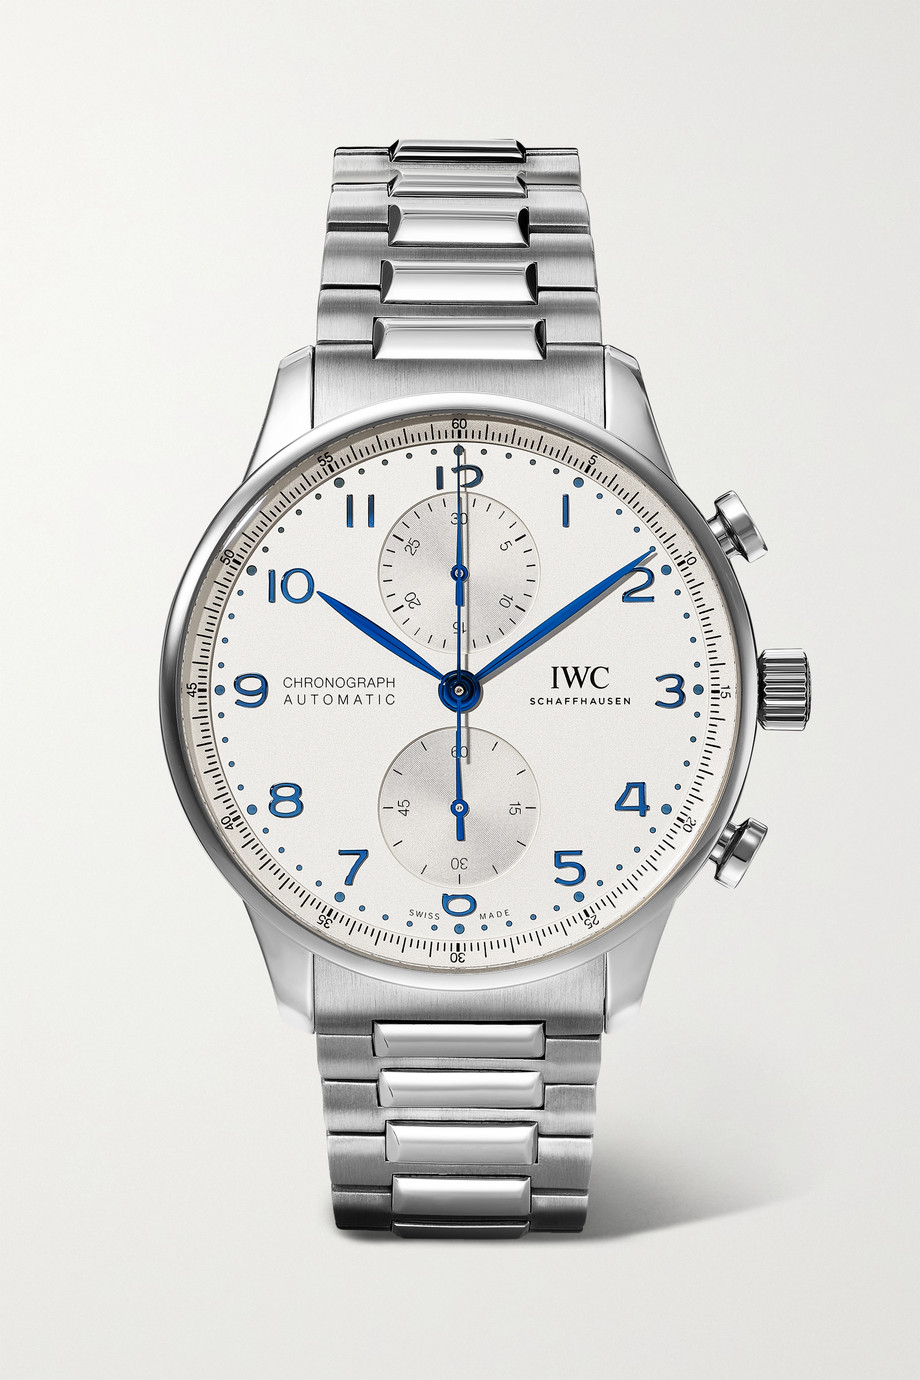 IWC SCHAFFHAUSEN Portugieser Automatic Chronograph 41mm stainless steel watch